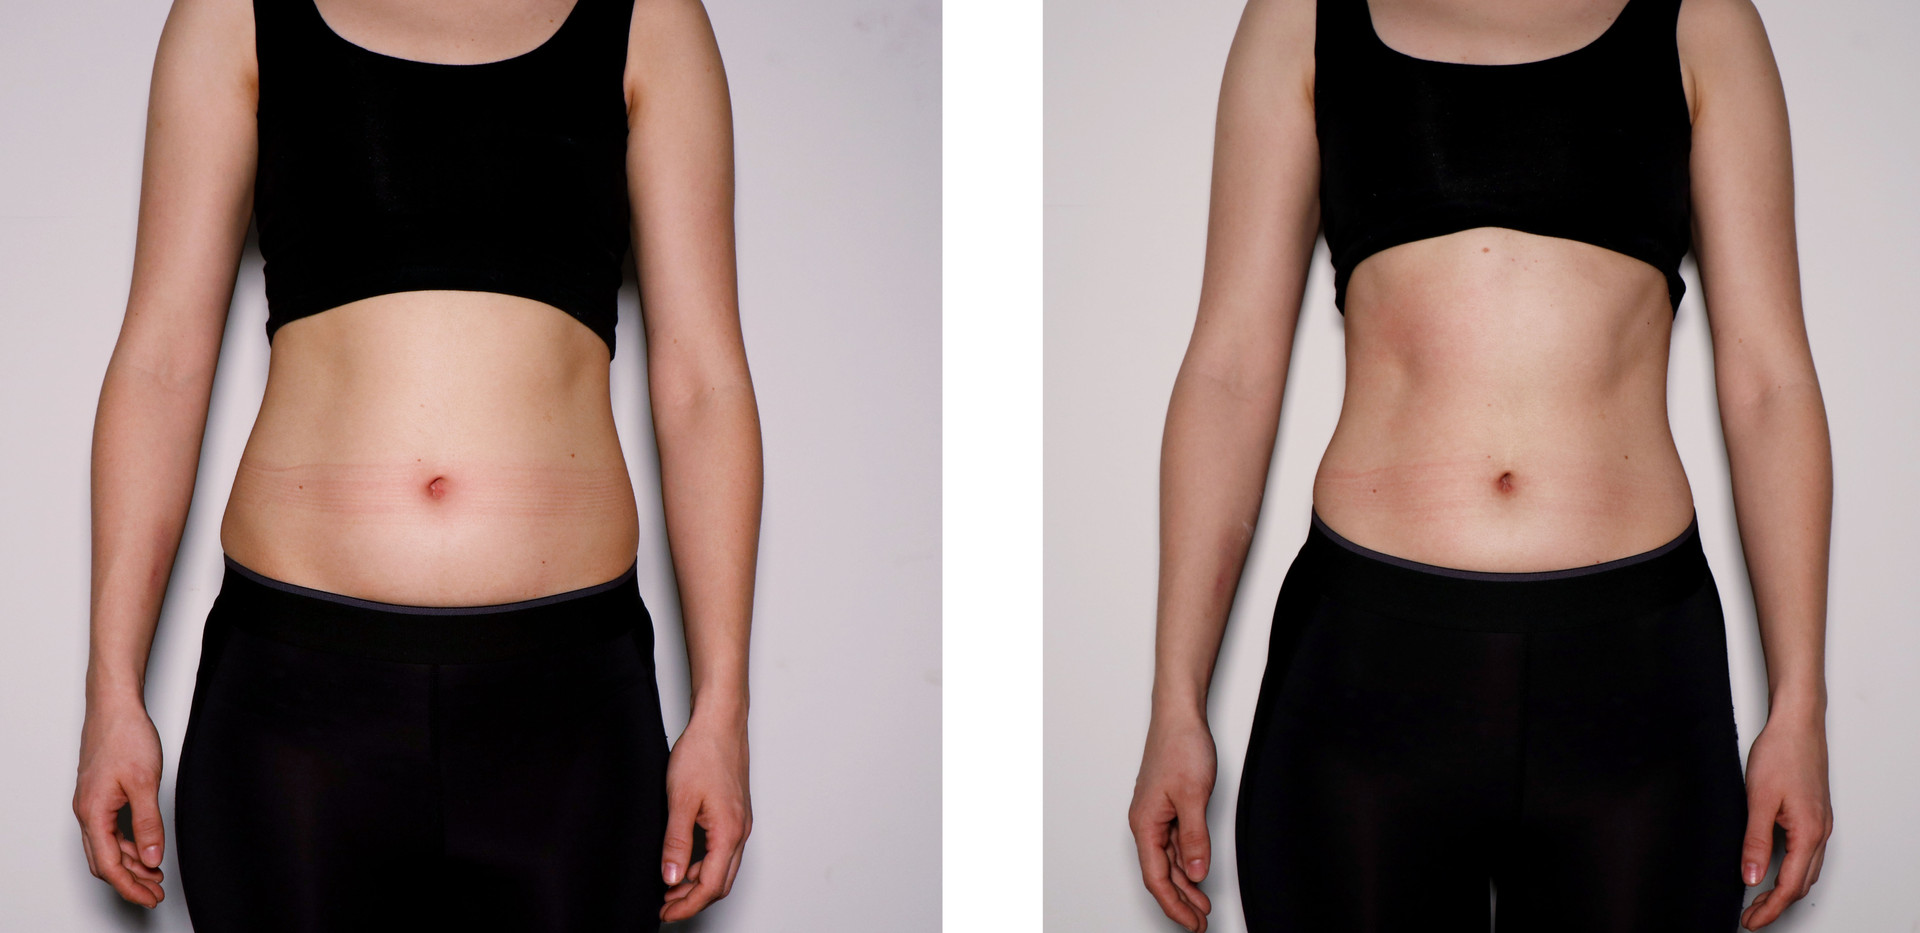 Cryoskin Female Abdomen Toning- Before & After